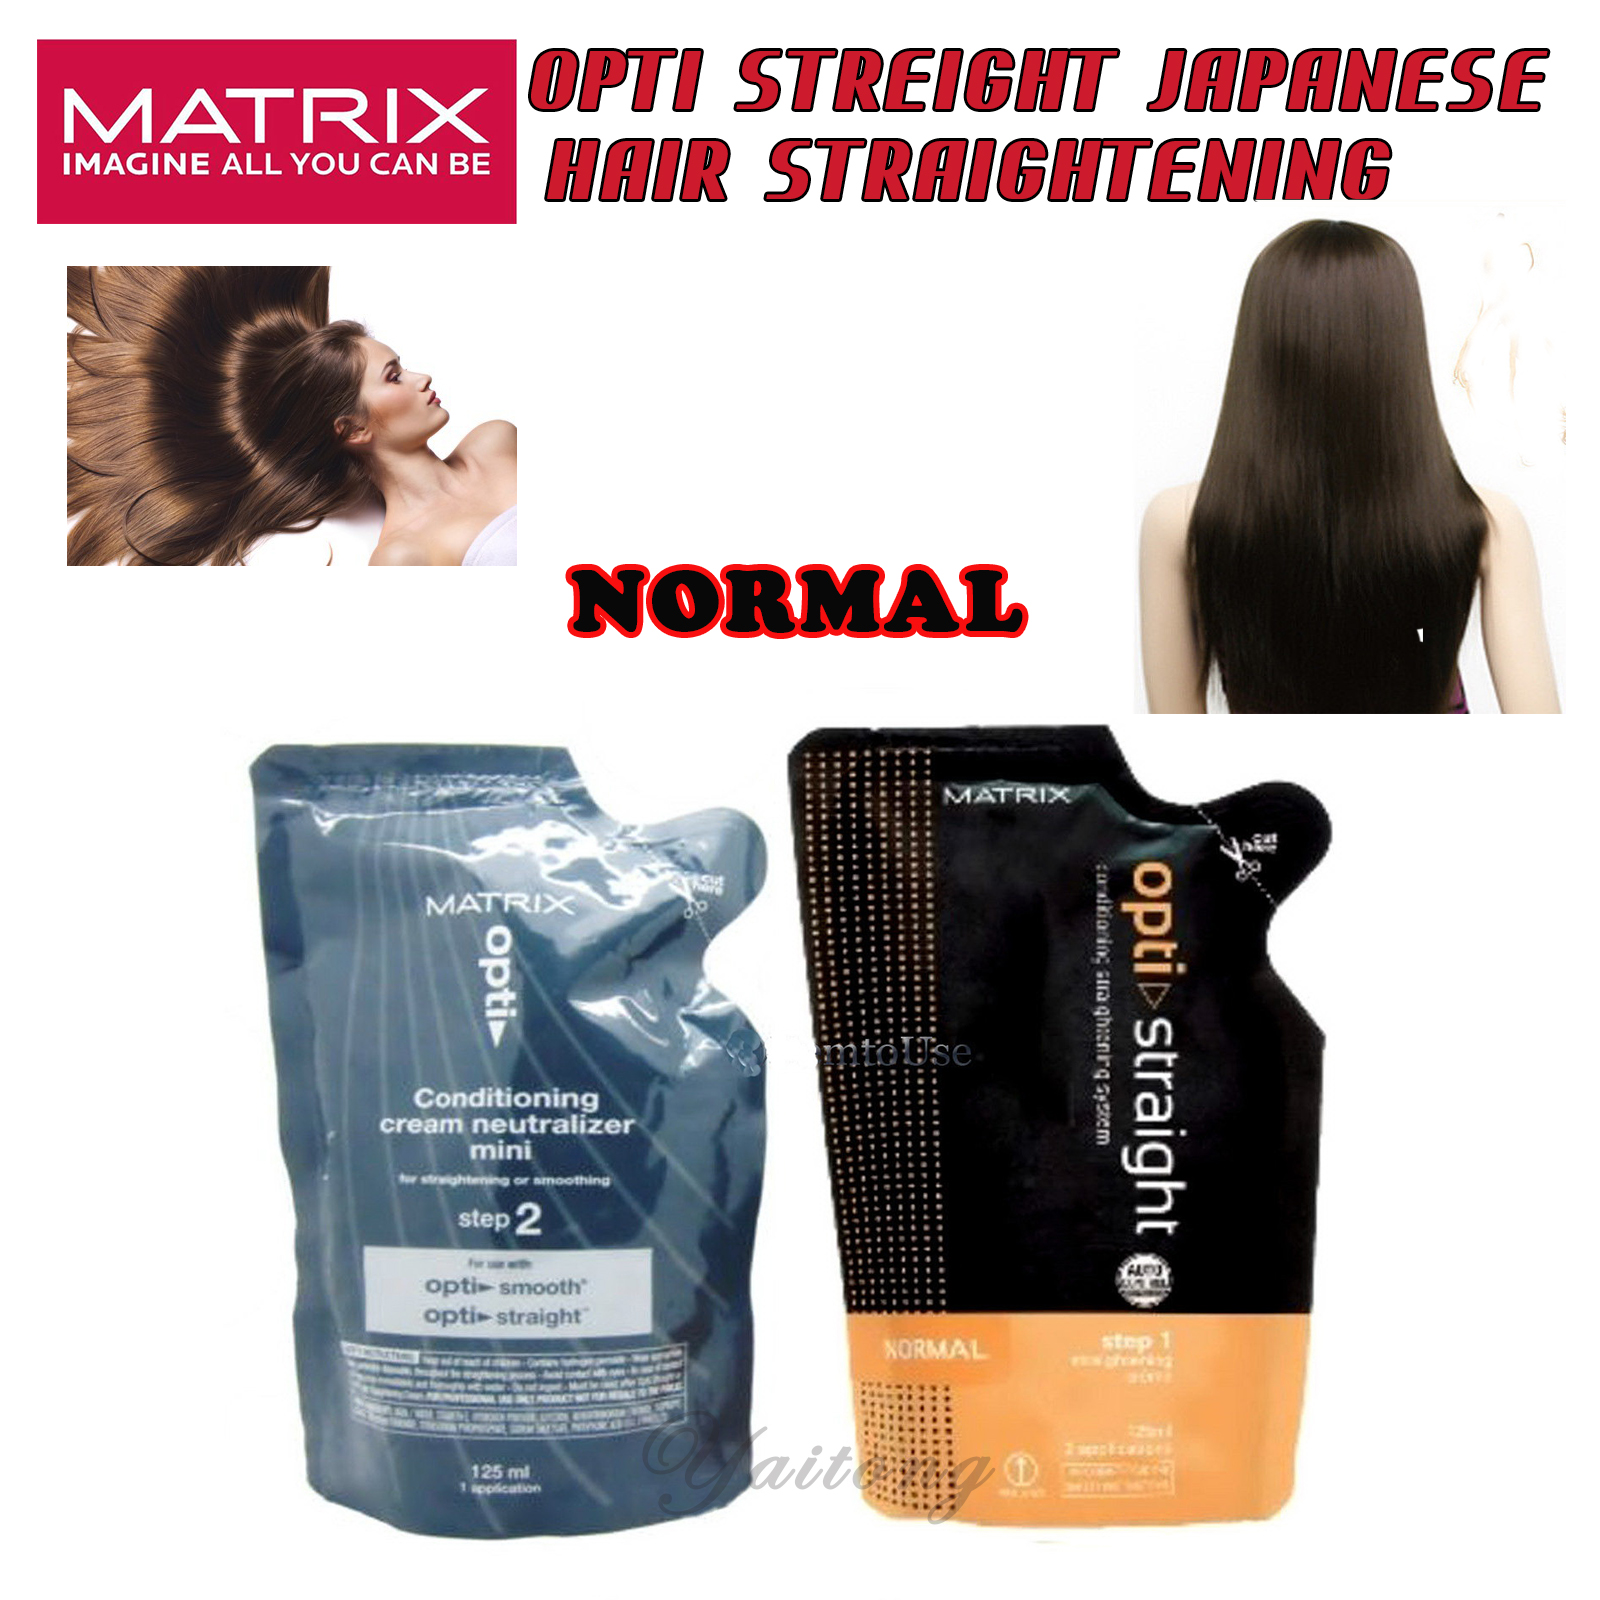 Matrix Opti Straight Japanese Hair Straightening Cream